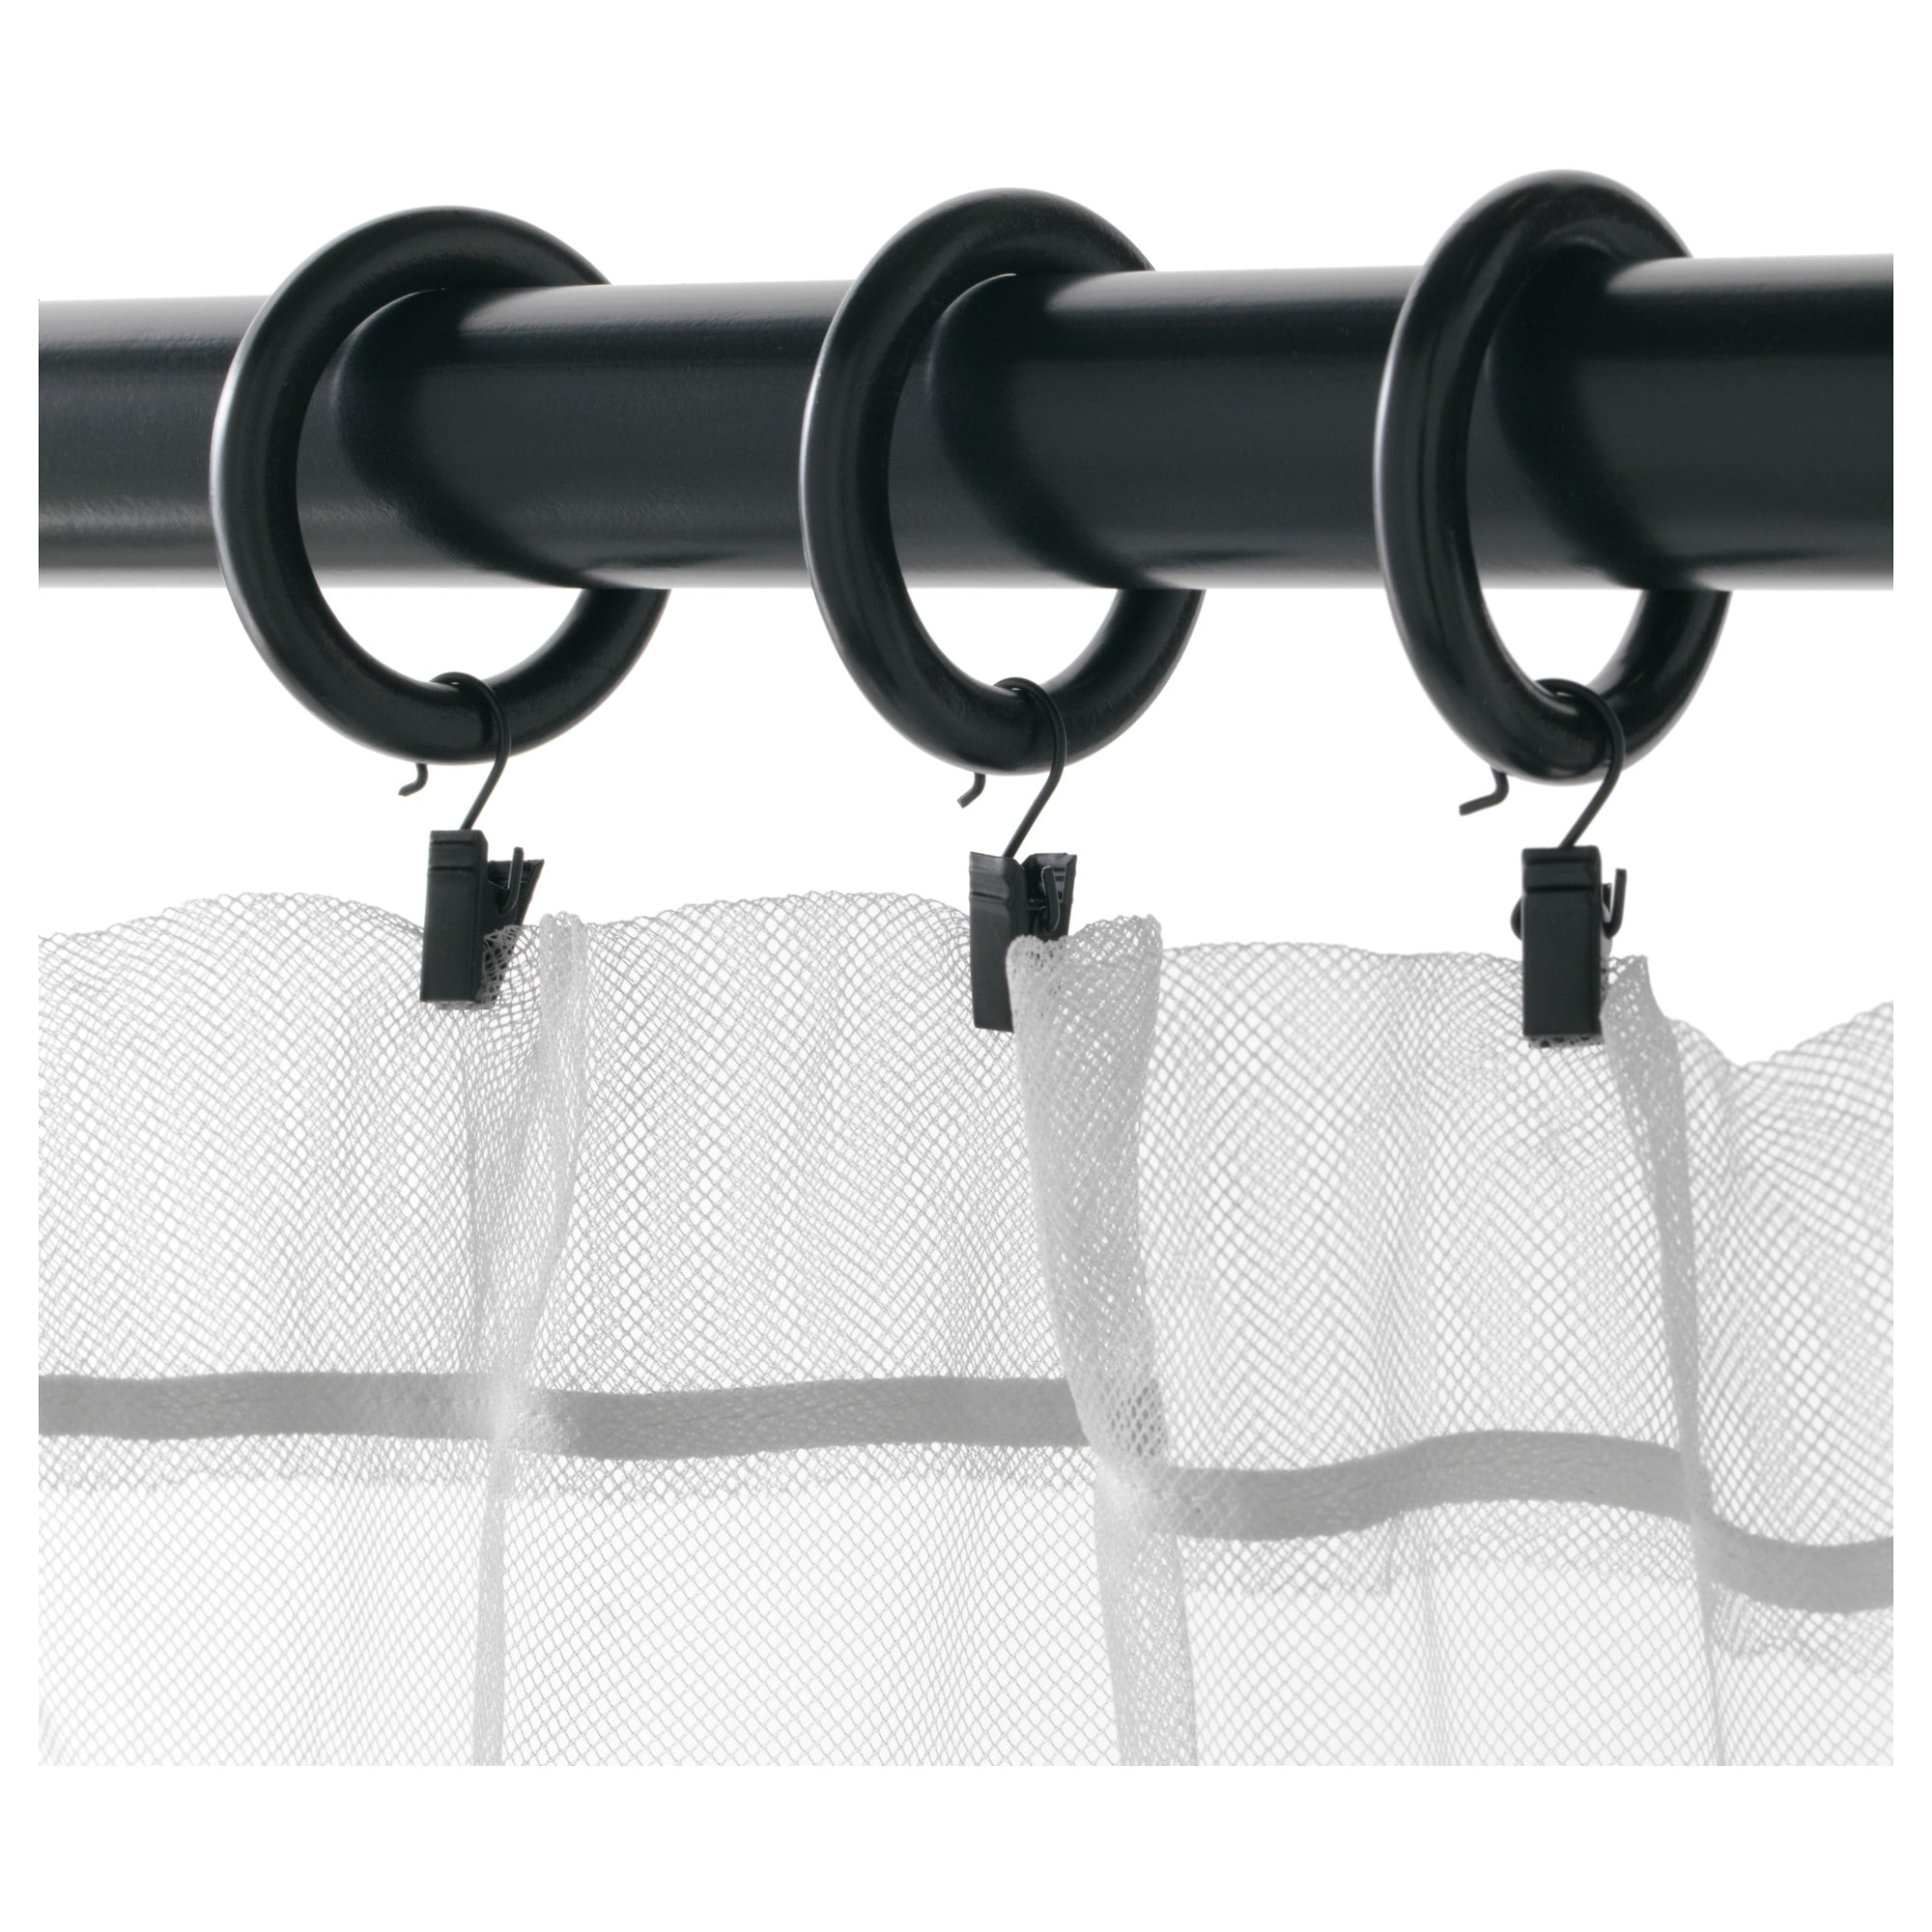 Syrlig curtain ring with clip and hook ikea you can hang your curtains - Syrlig Curtain Ring With Clip And Hook Ikea You Can Hang Your Curtains 9